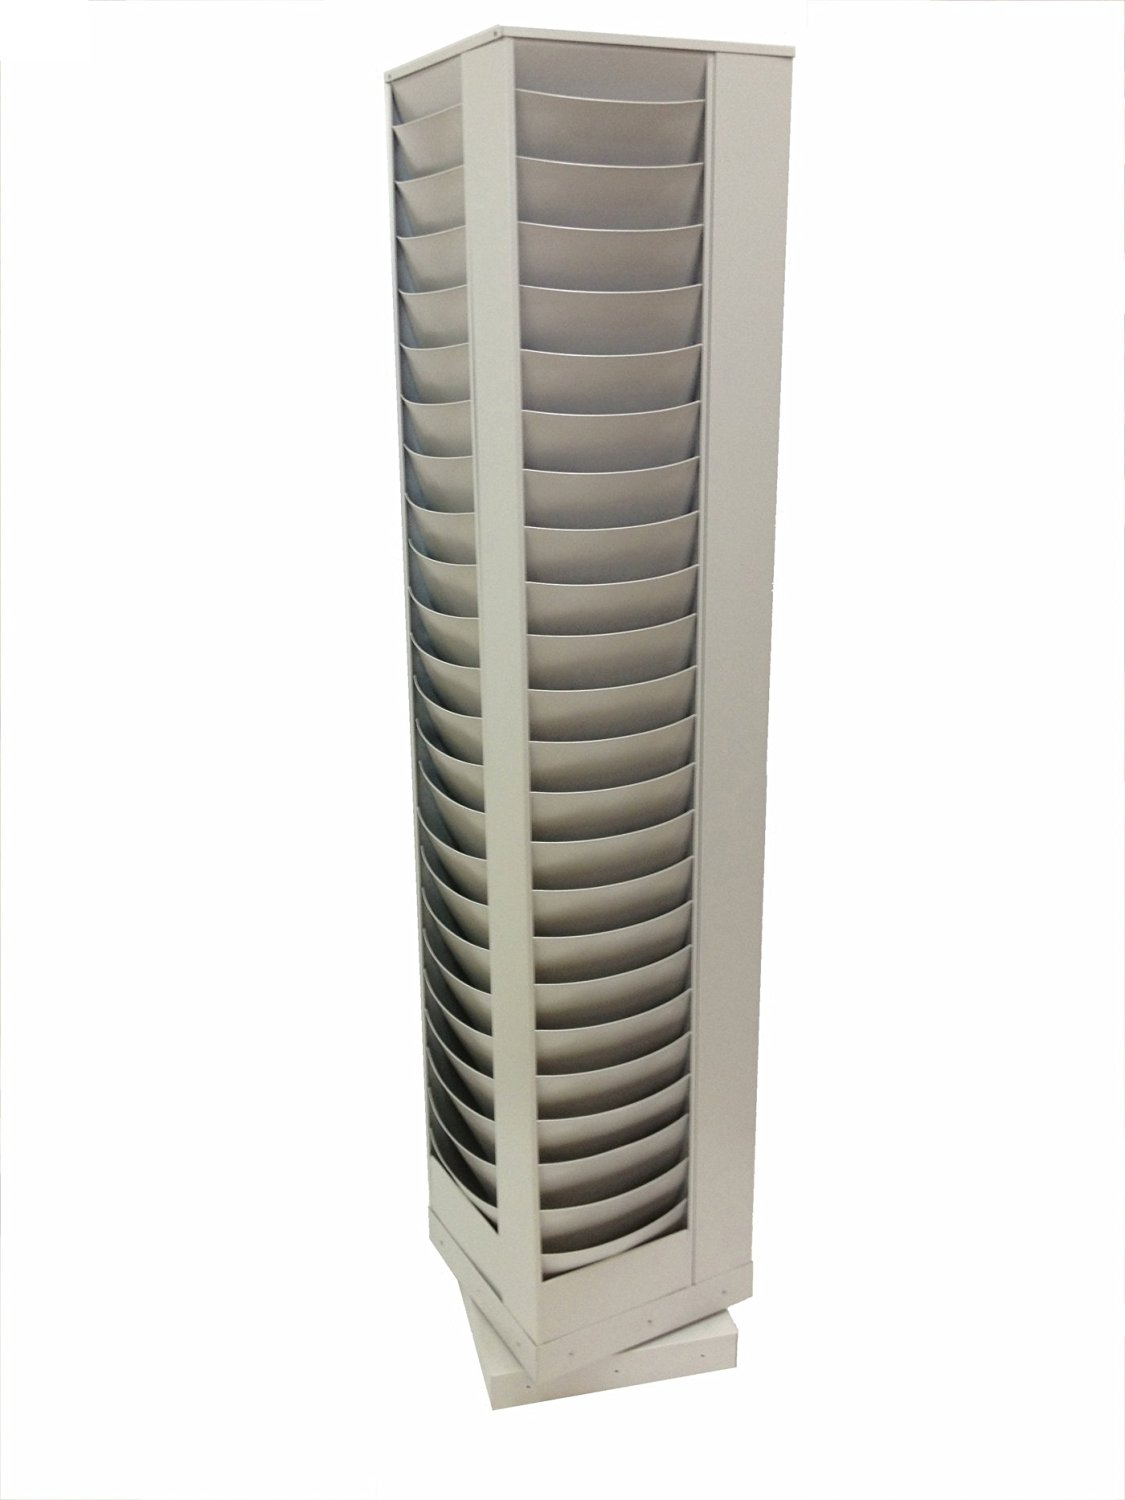 Buddy Products 92-Pocket Curved Steel Rotating Display Rack, 13.75 x 67.63 x 13.75 Inches, Platinum (0866-32)